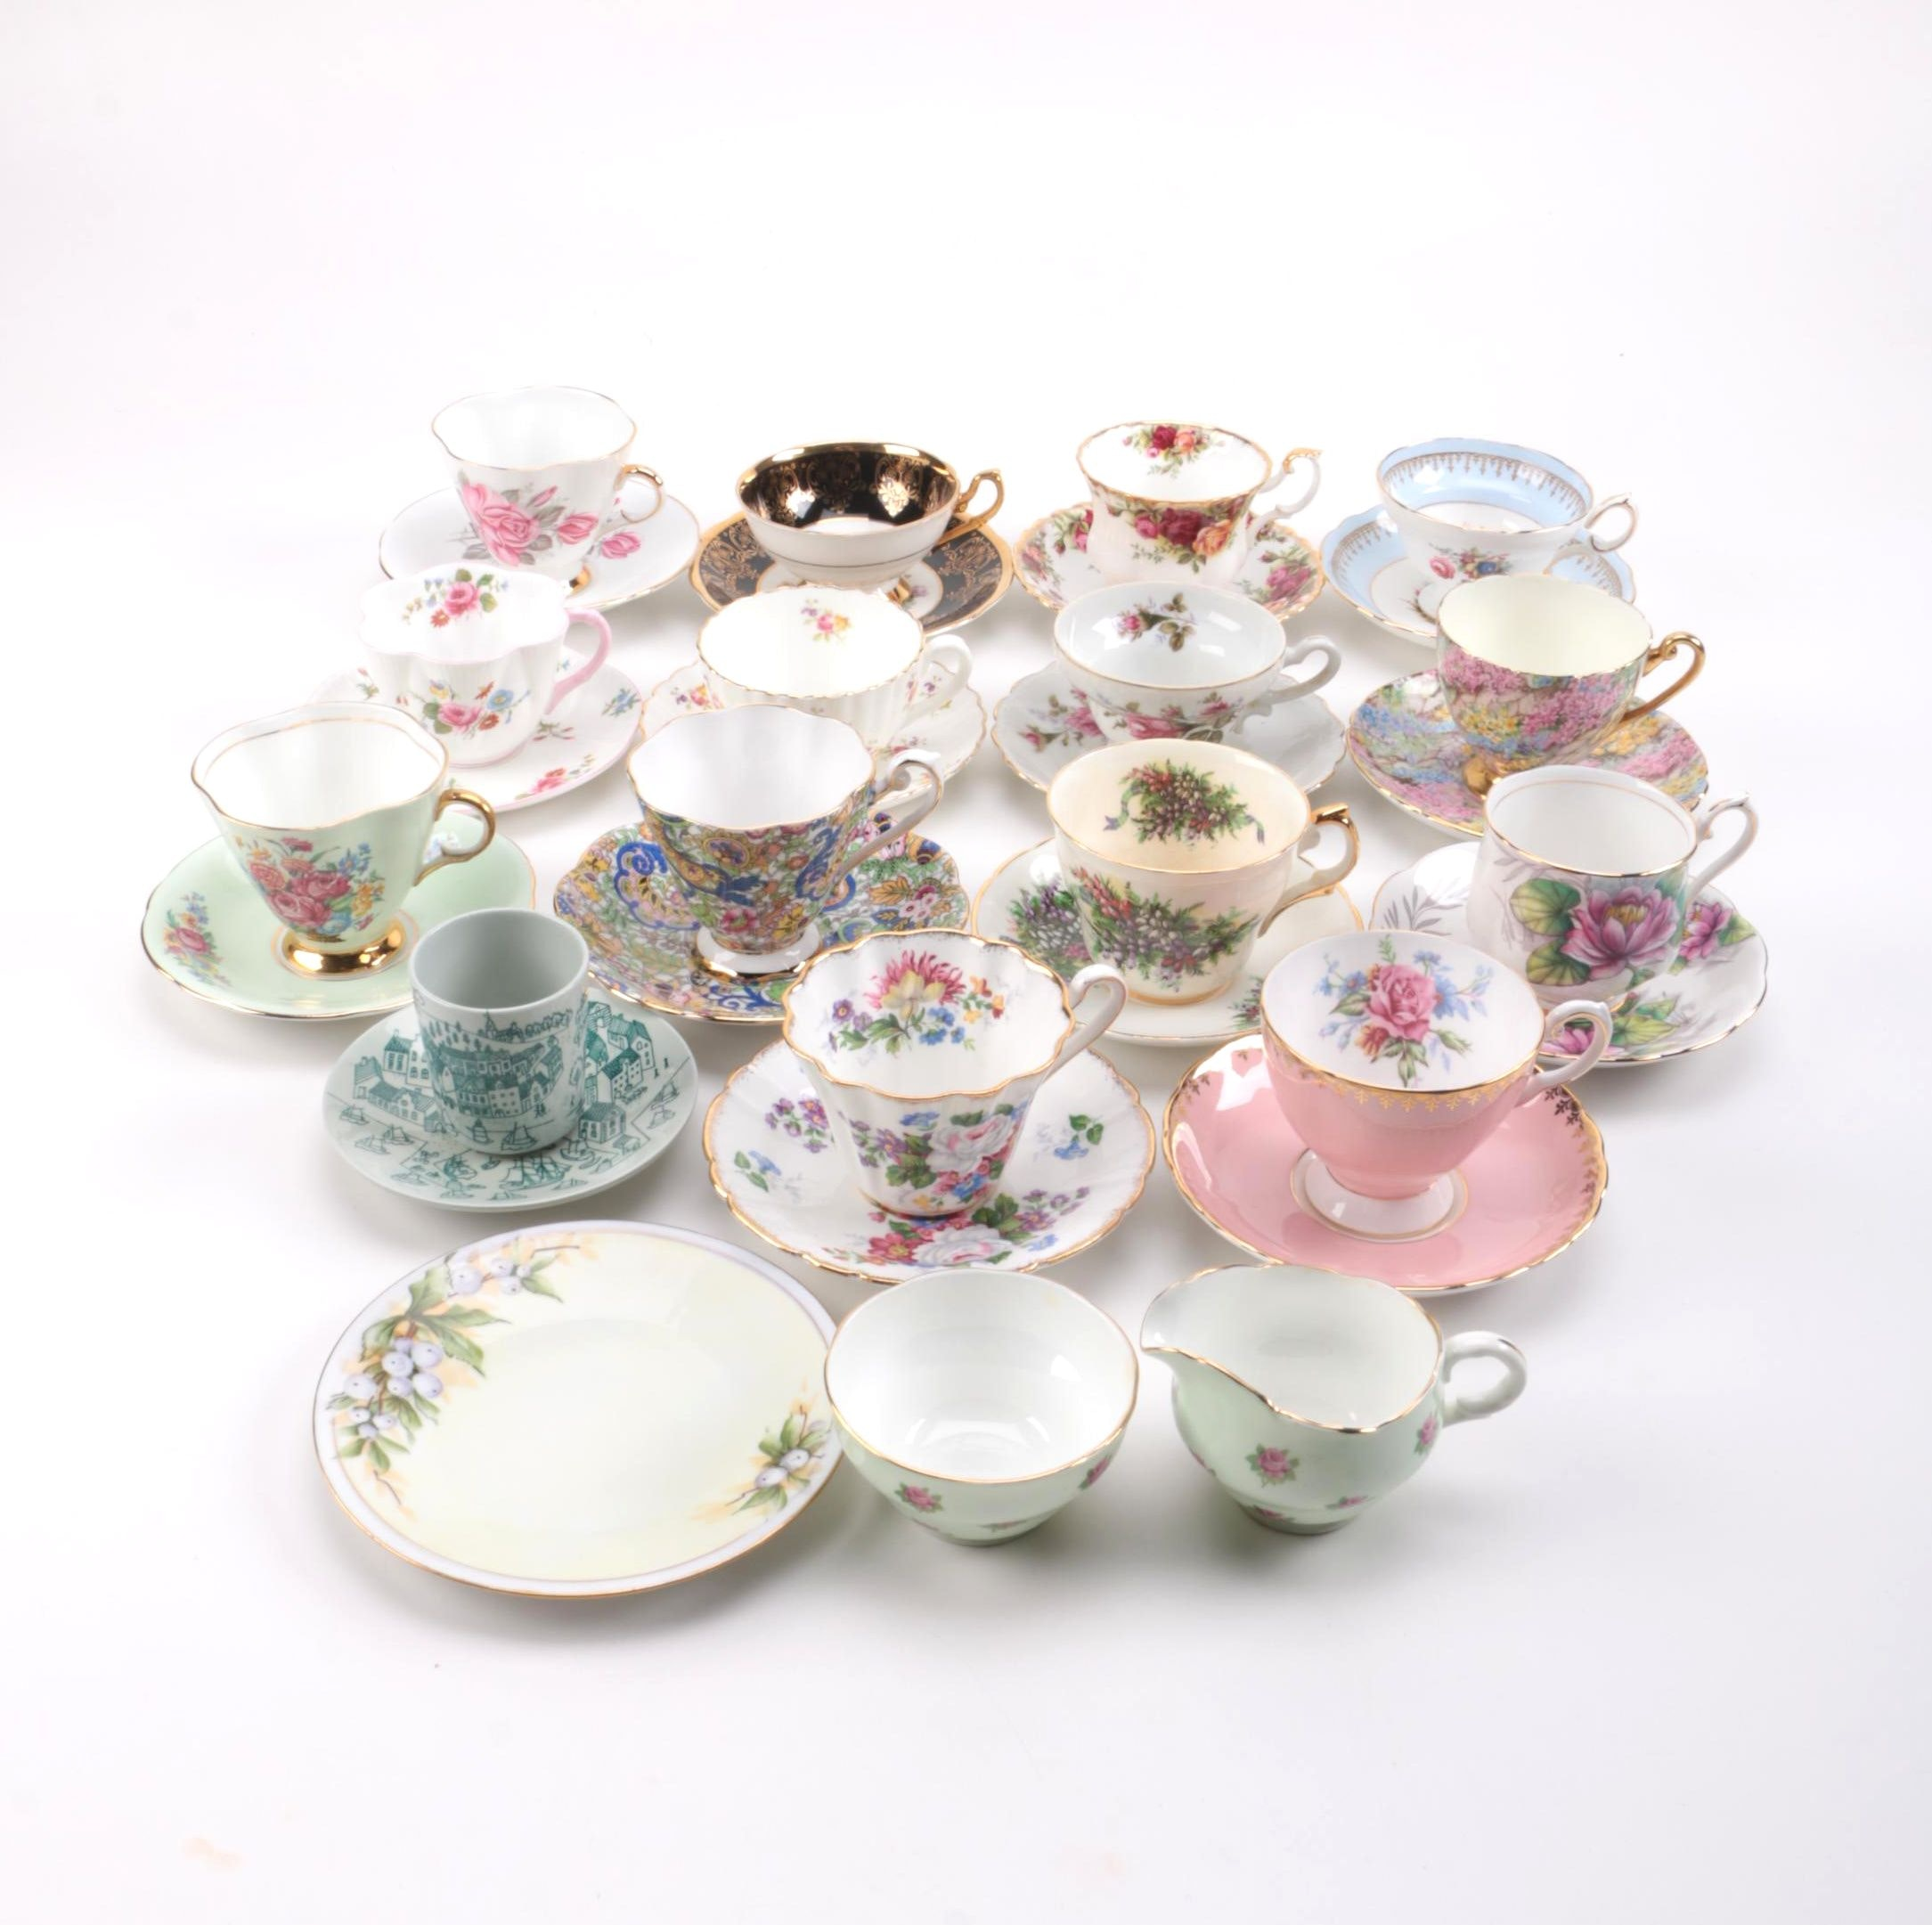 Floral Teacups and Saucers with Creamer and Sugar